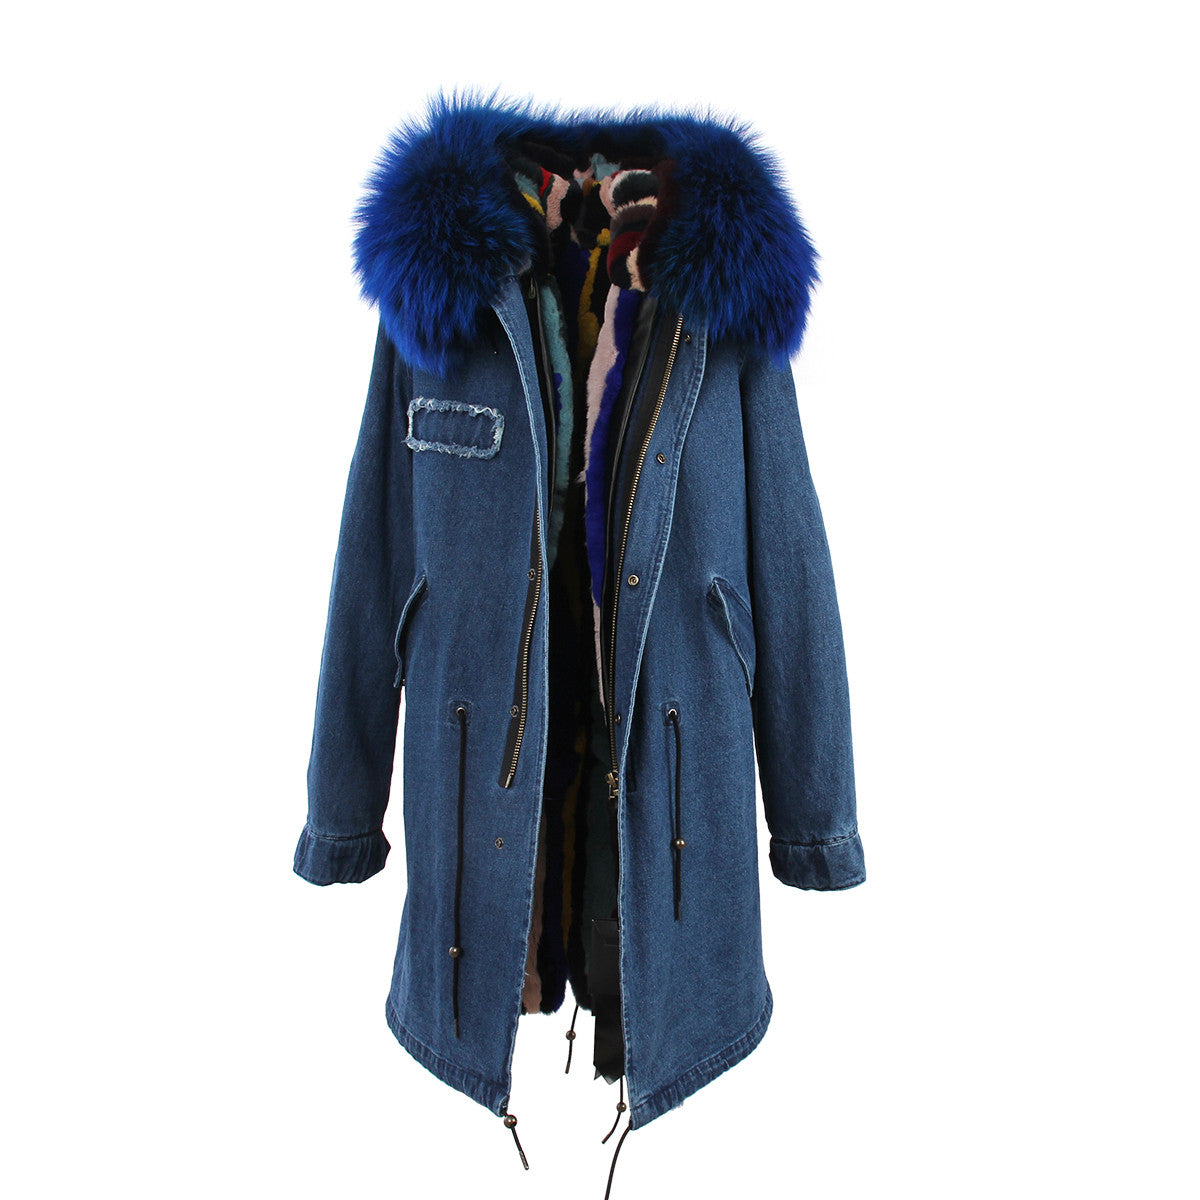 Fashion Women Raccoon Rabbit Fur Coat - All In One Place With Us - 5